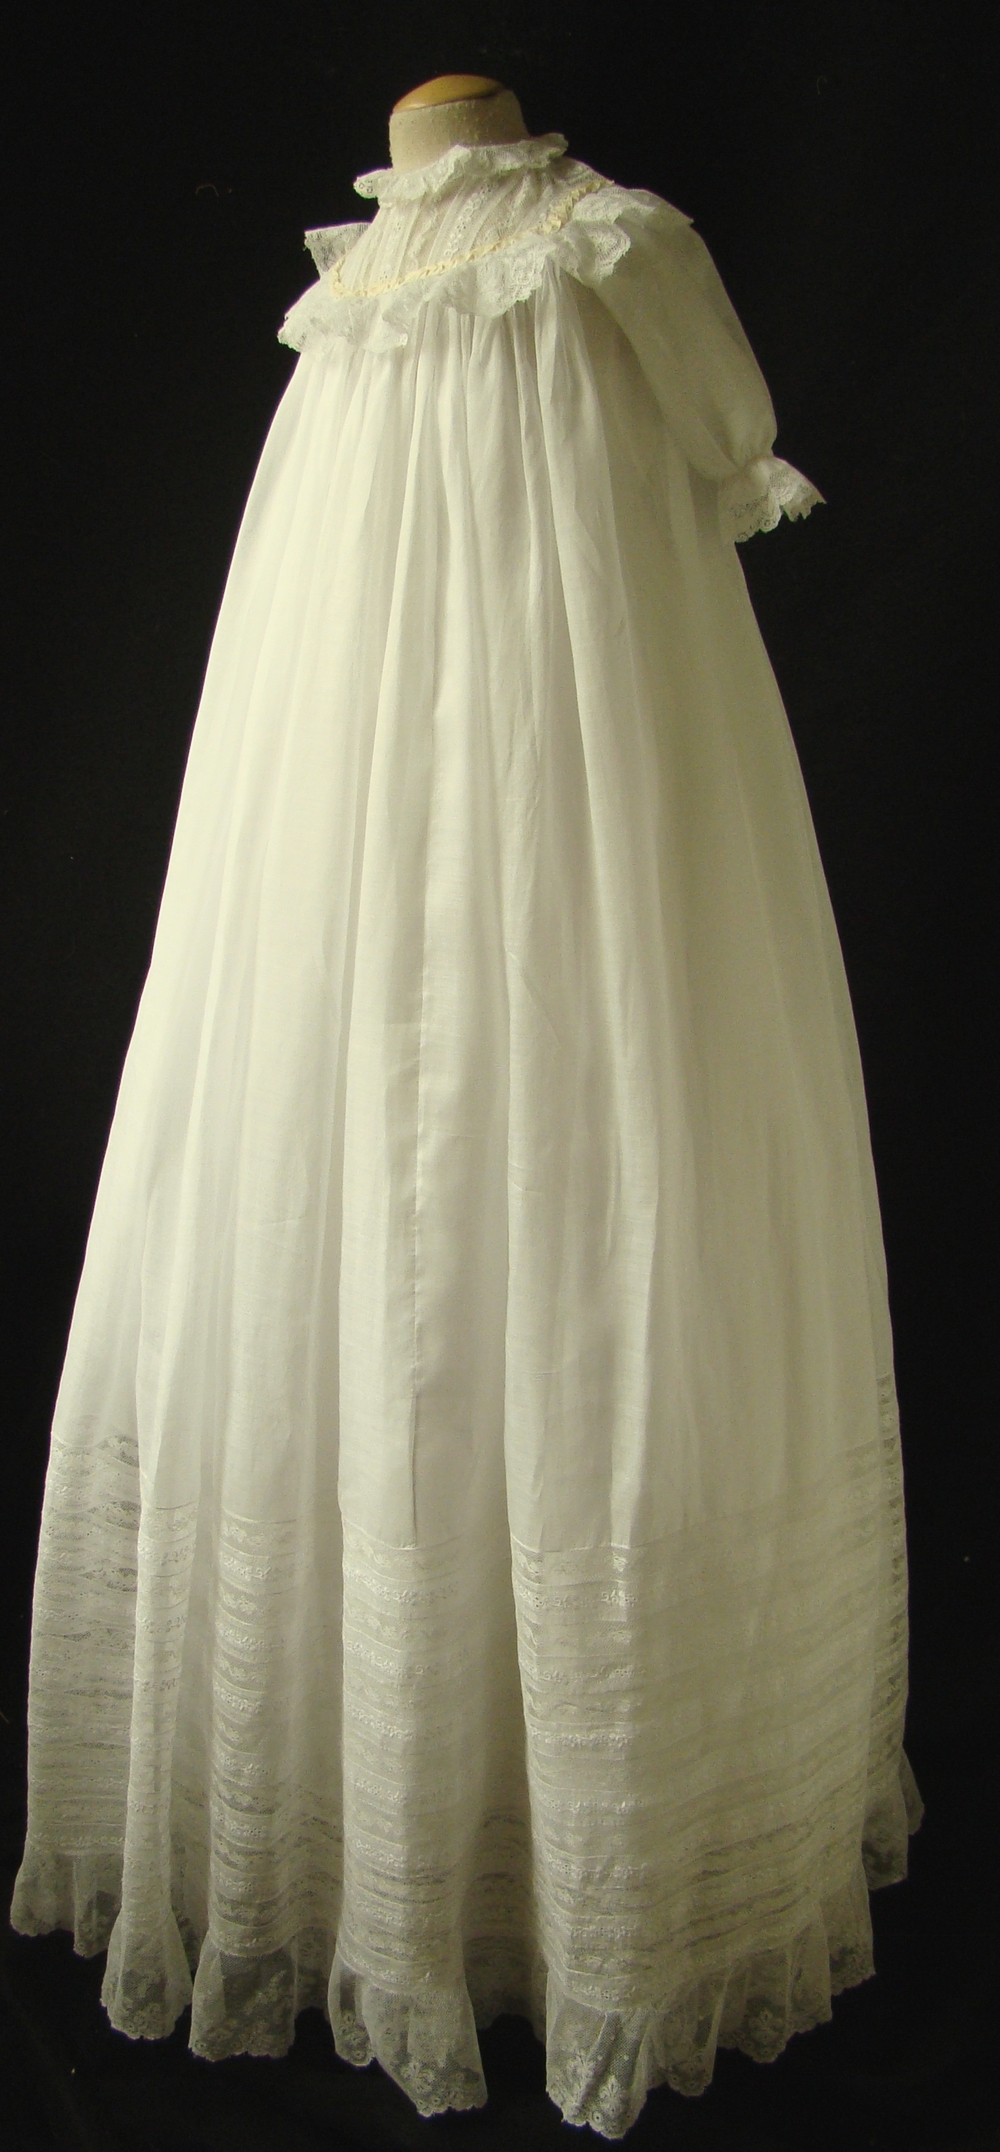 Light Cotton Gown with Ribbons and Matching Slip, c. 1900